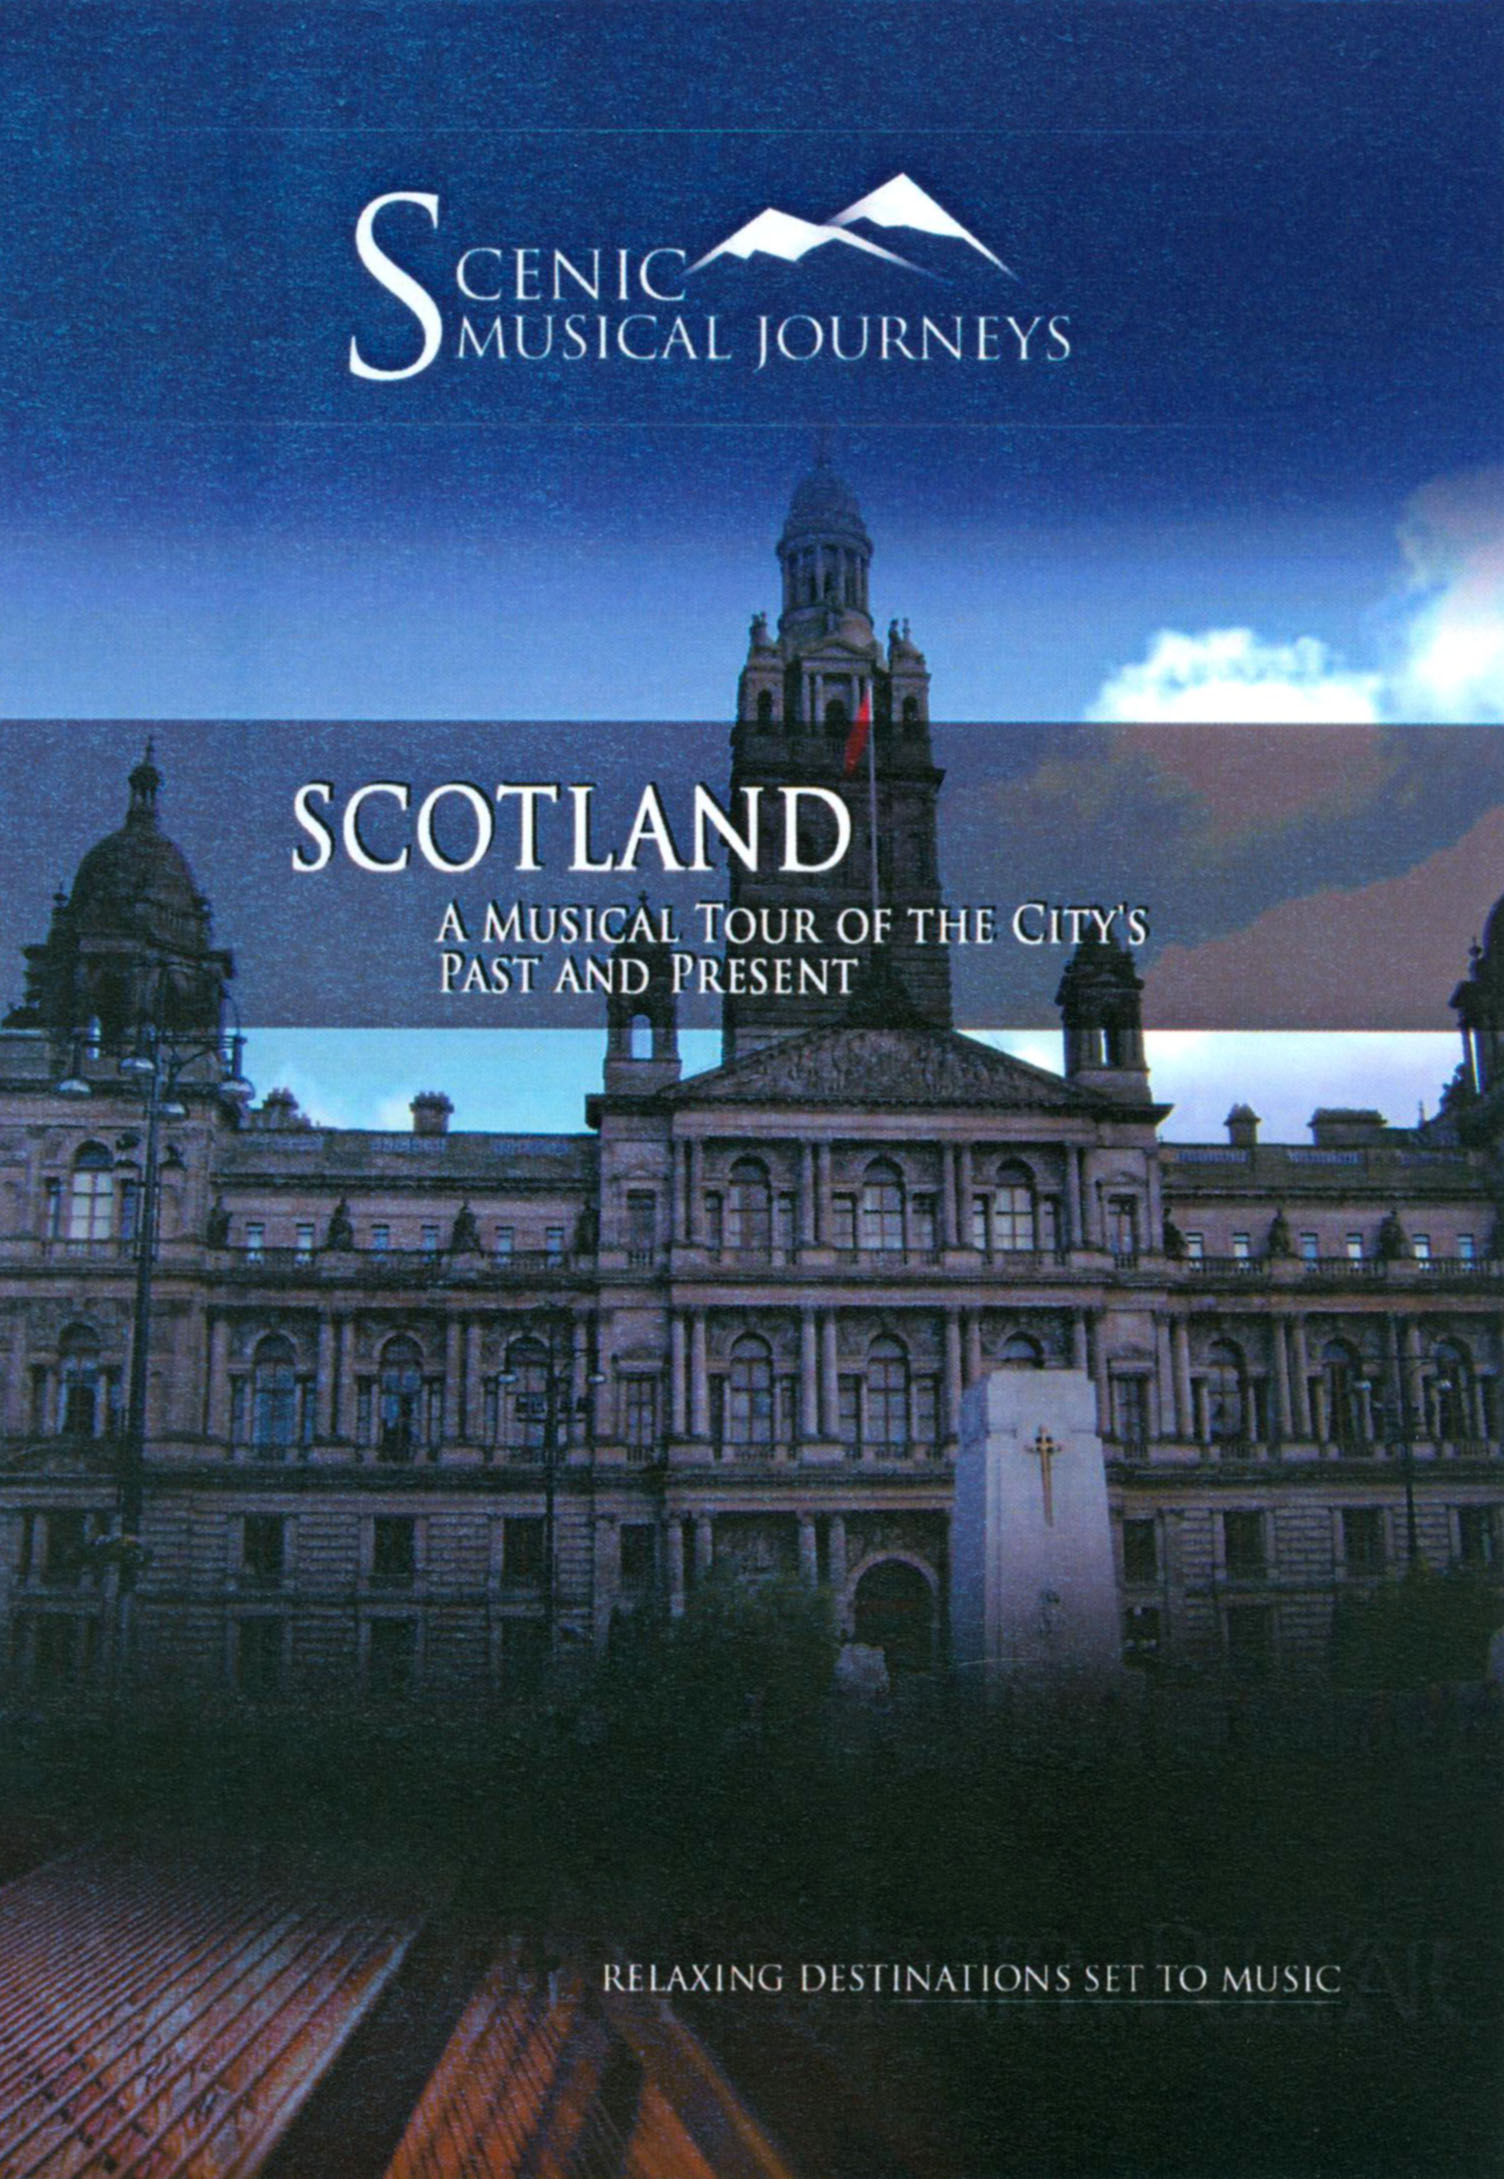 Scenic Musical Journeys: Scotland - A Musical Tour of the City's Past and Present